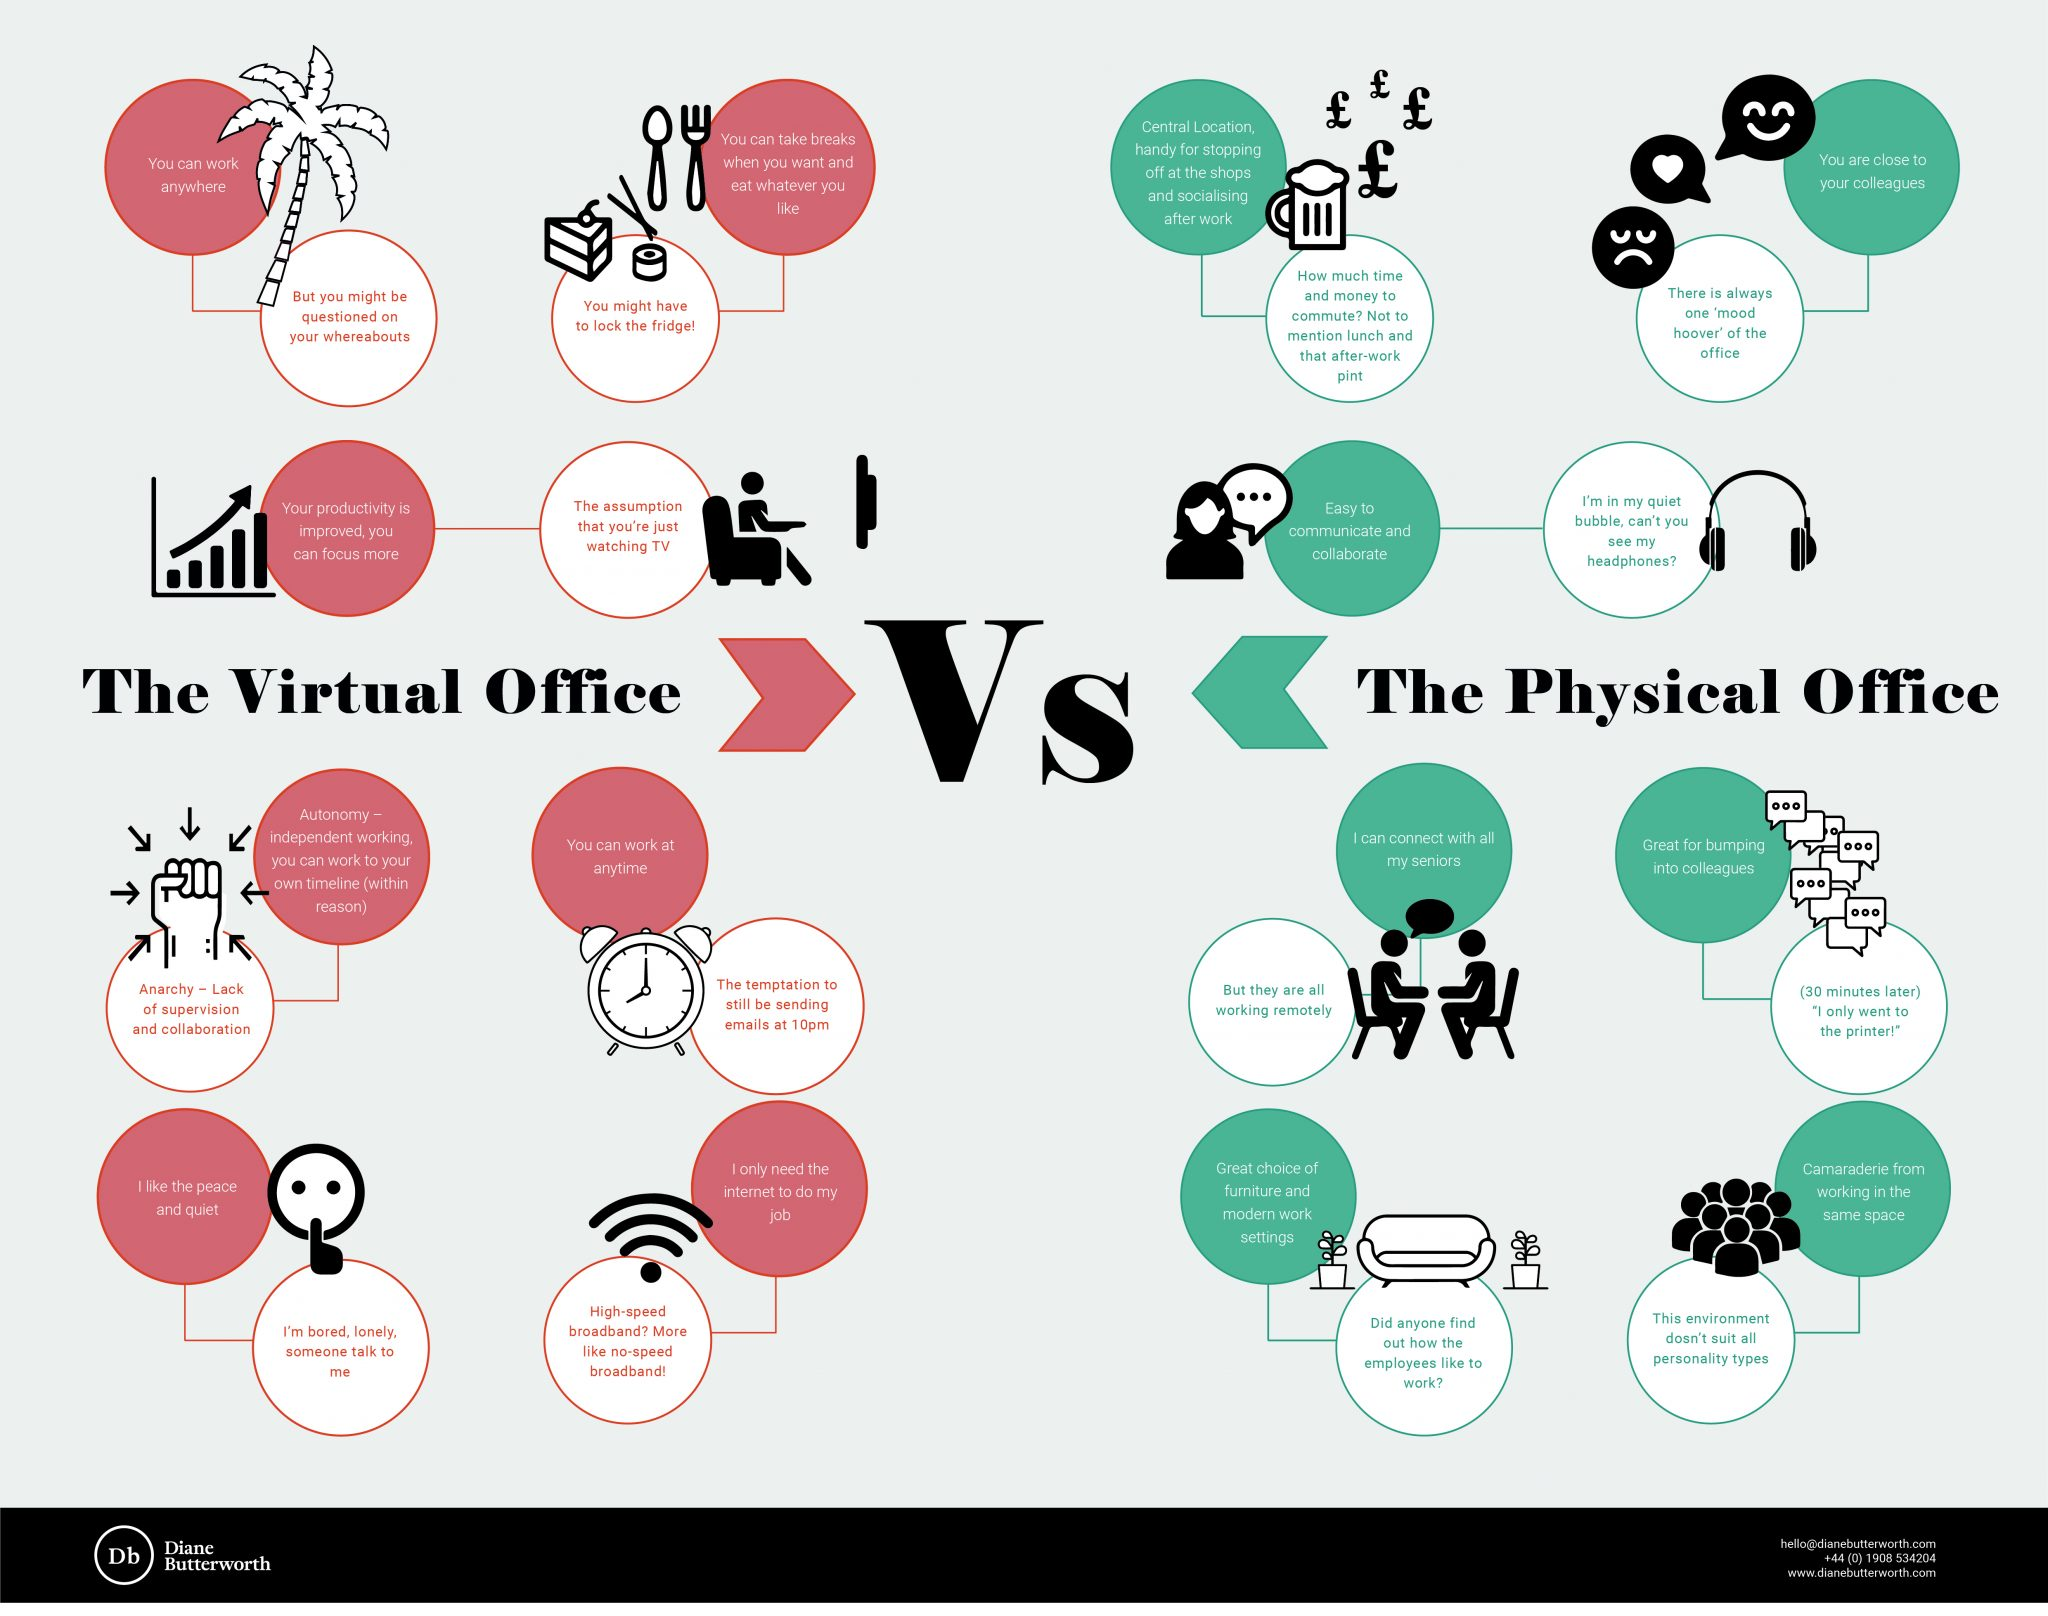 In the future of office design, virtual office vs physical will be a key battle.